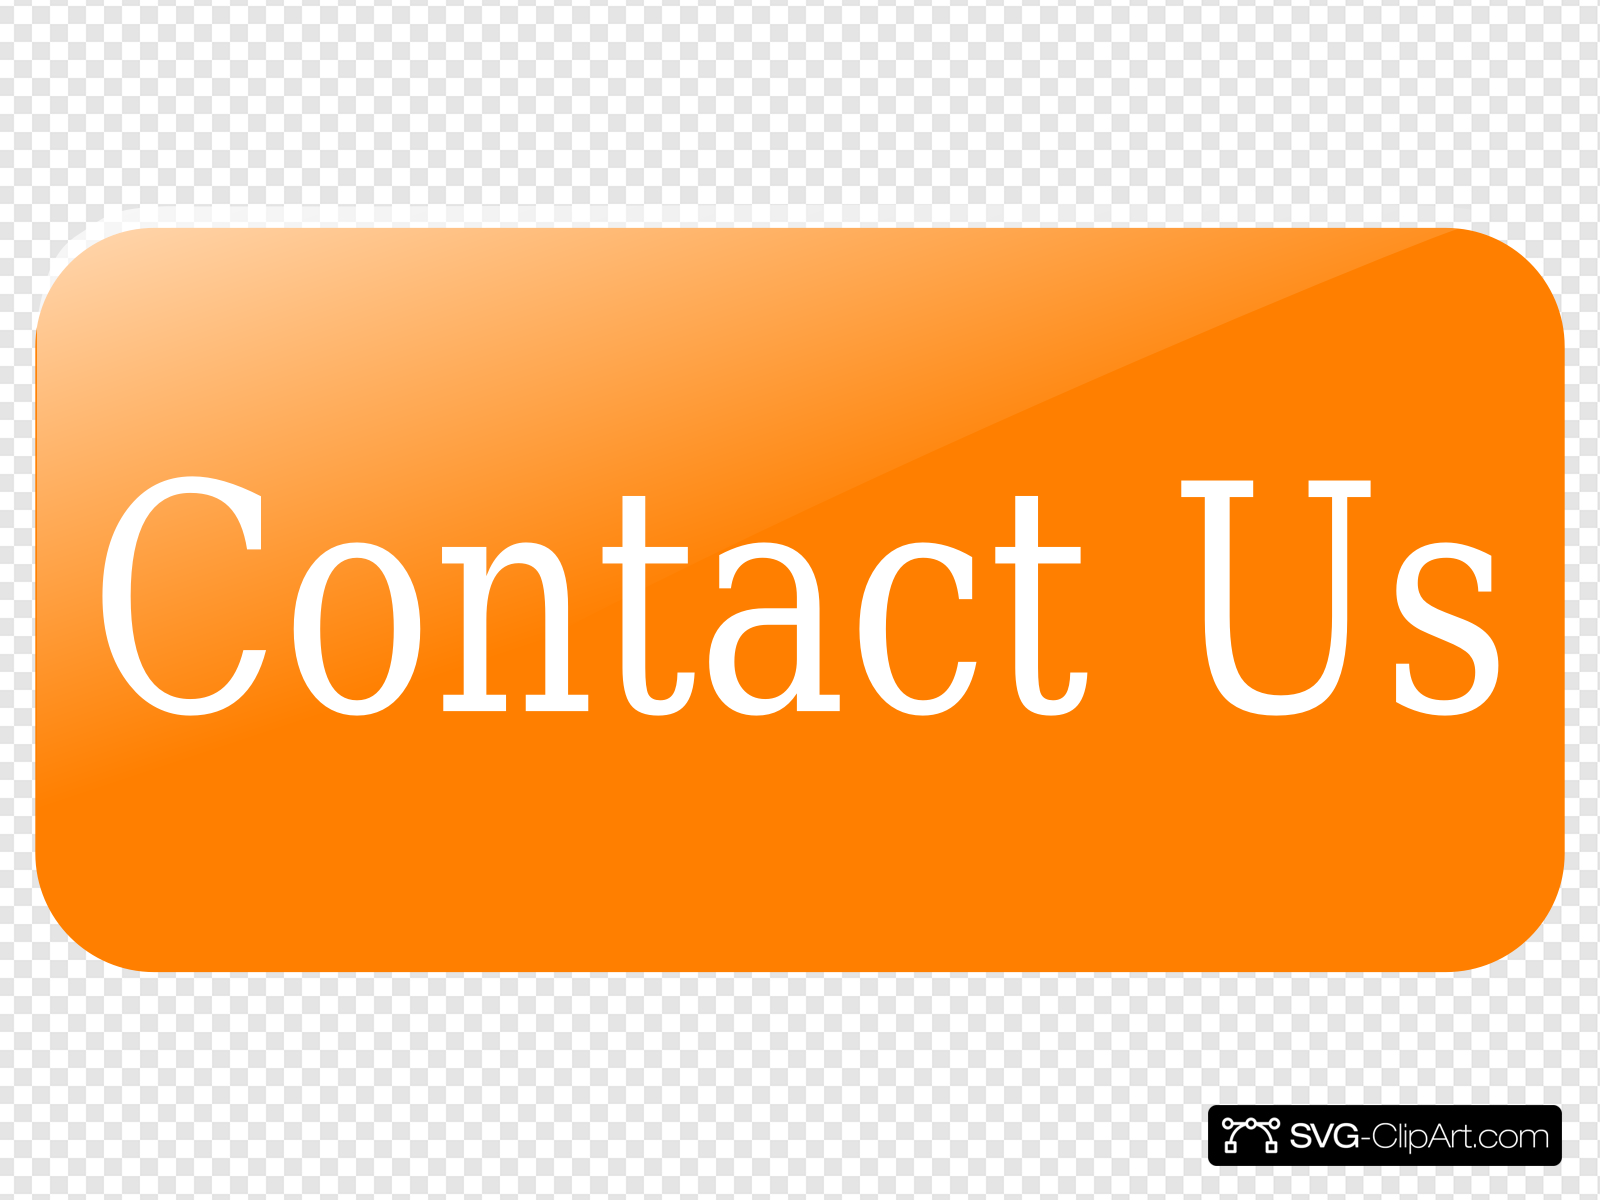 Contact Us.png Clip art, Icon and SVG.